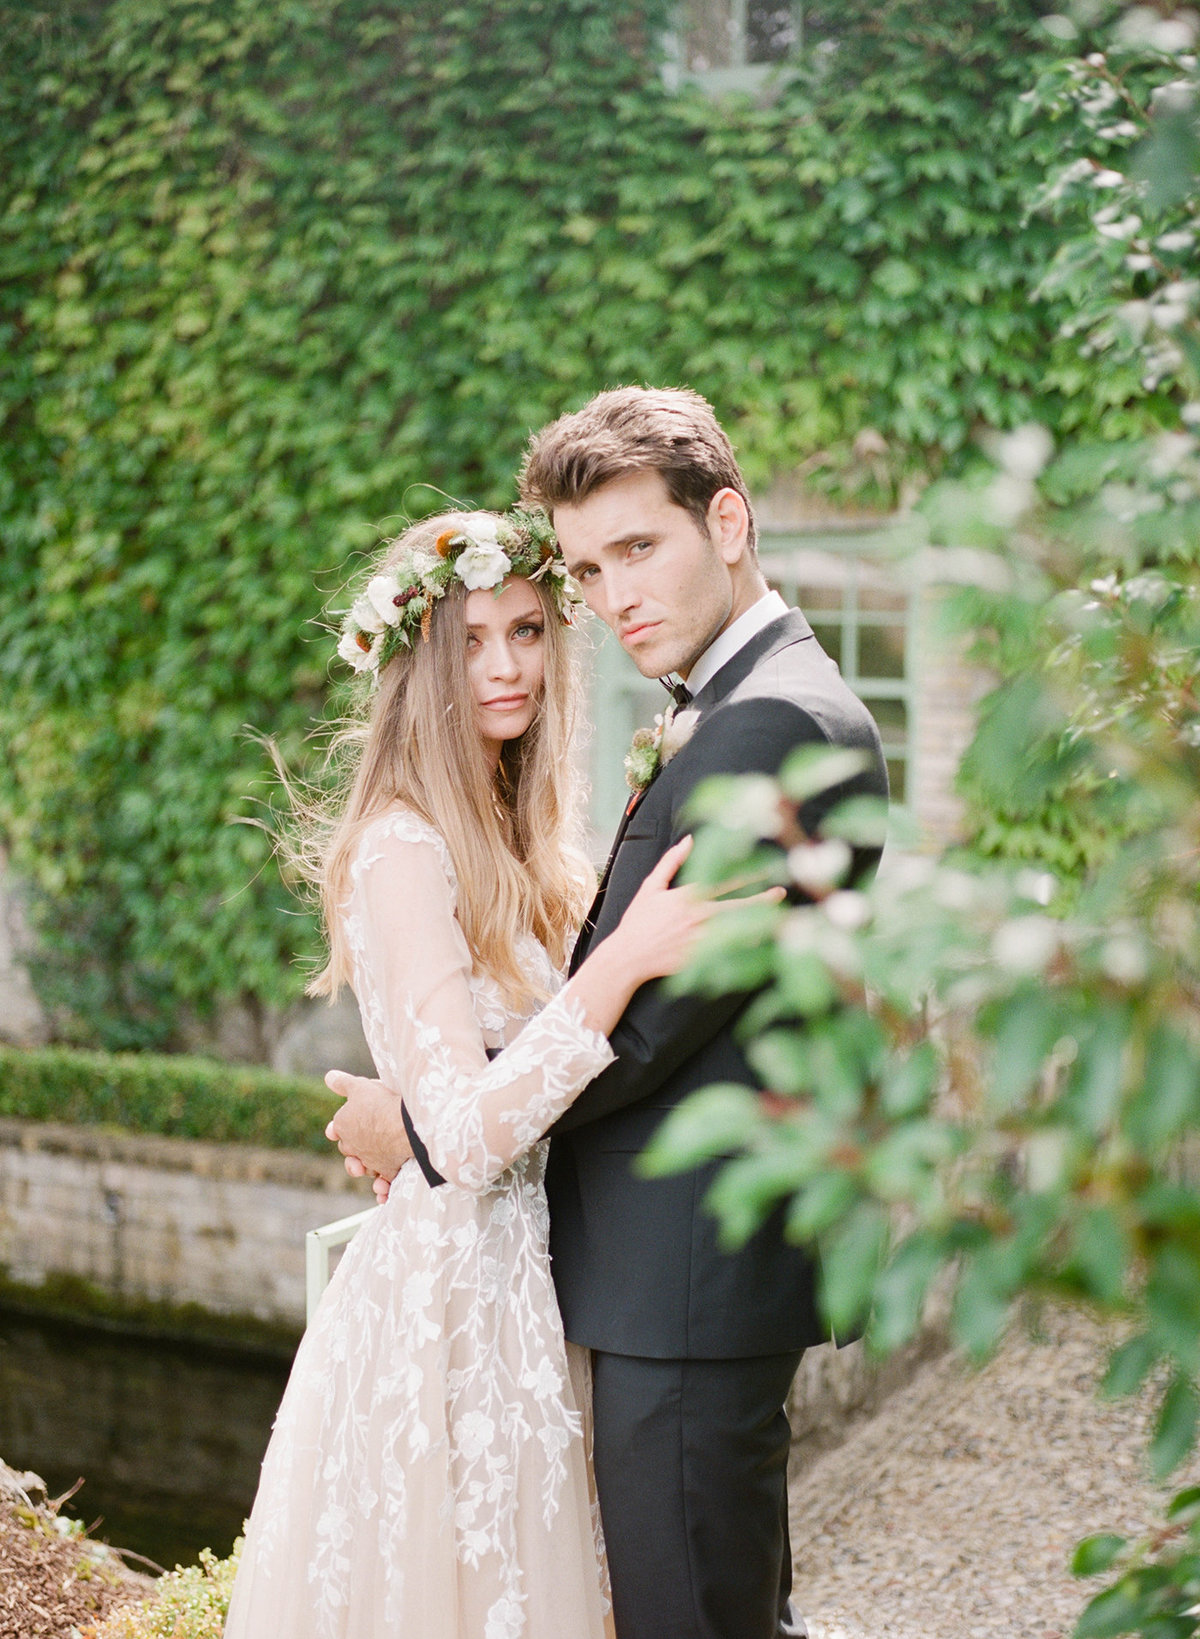 Destination Wedding Photographer - Ireland Editorial - Cliff at Lyons Kildare Ireland - Sarah Sunstrom Photography - 41